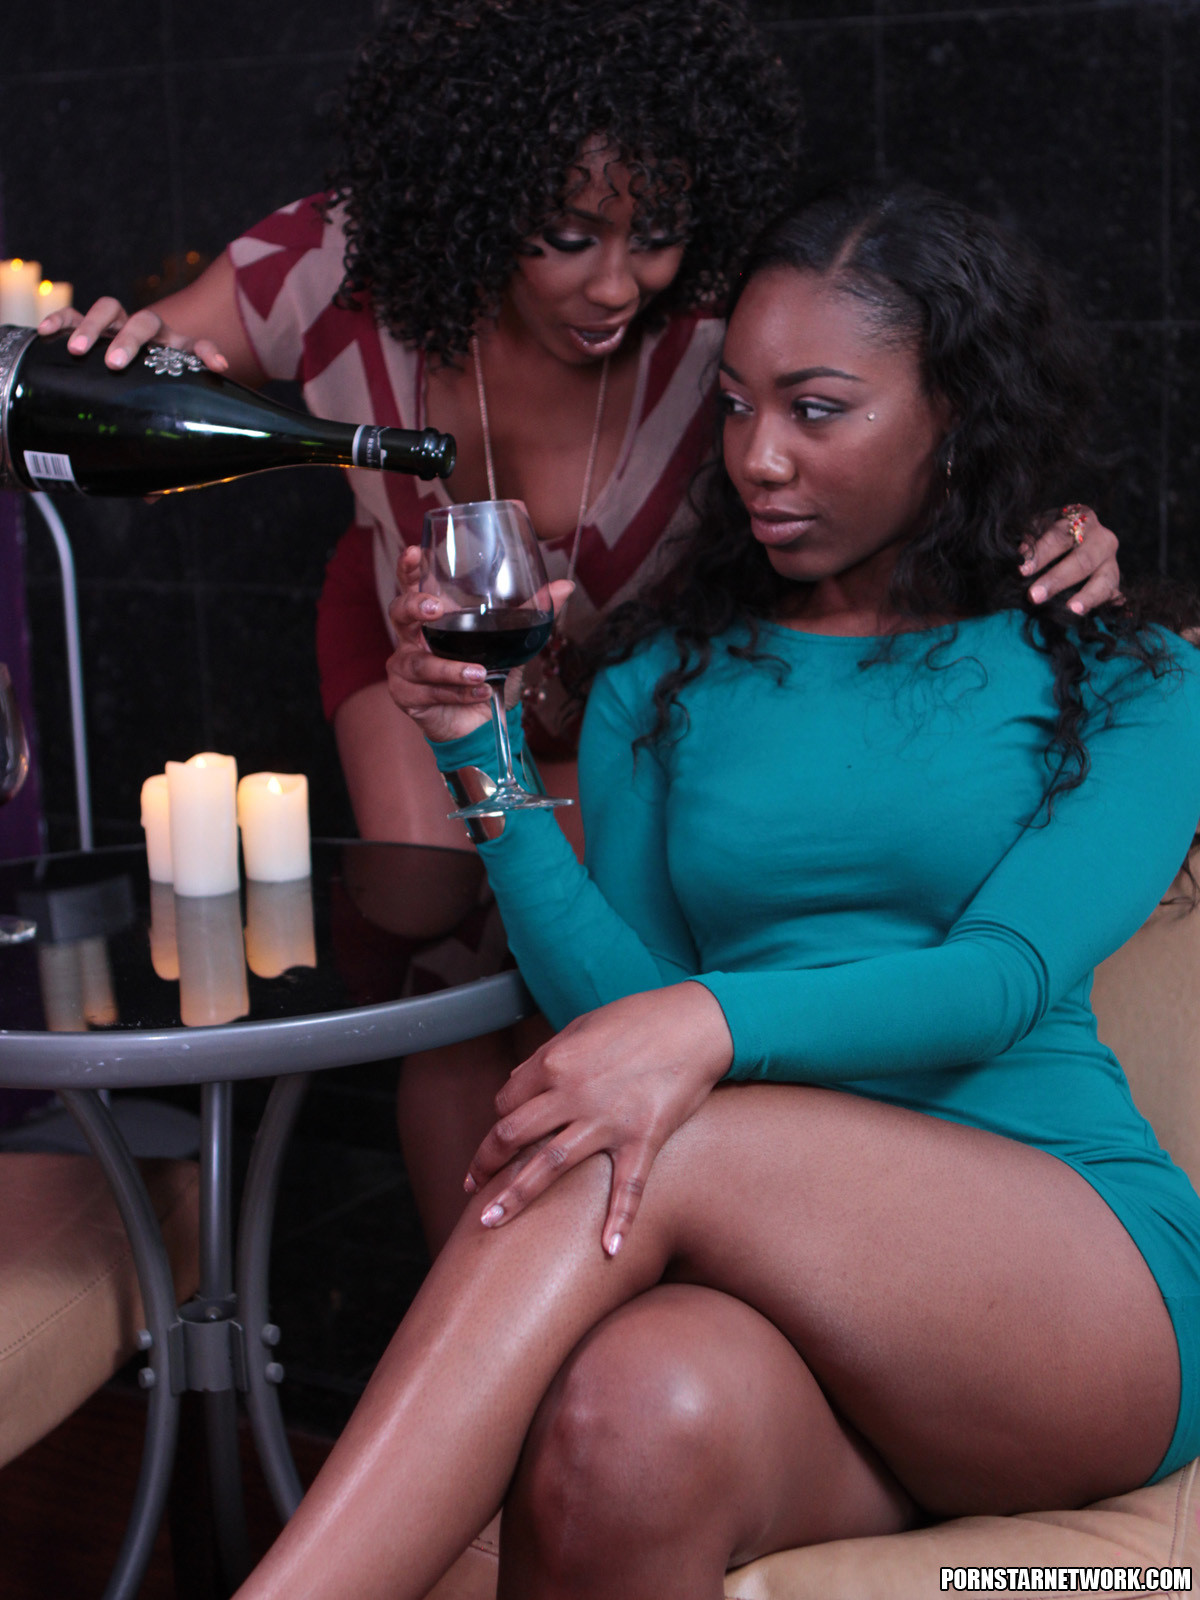 chanel heart and misty stone at their hottest